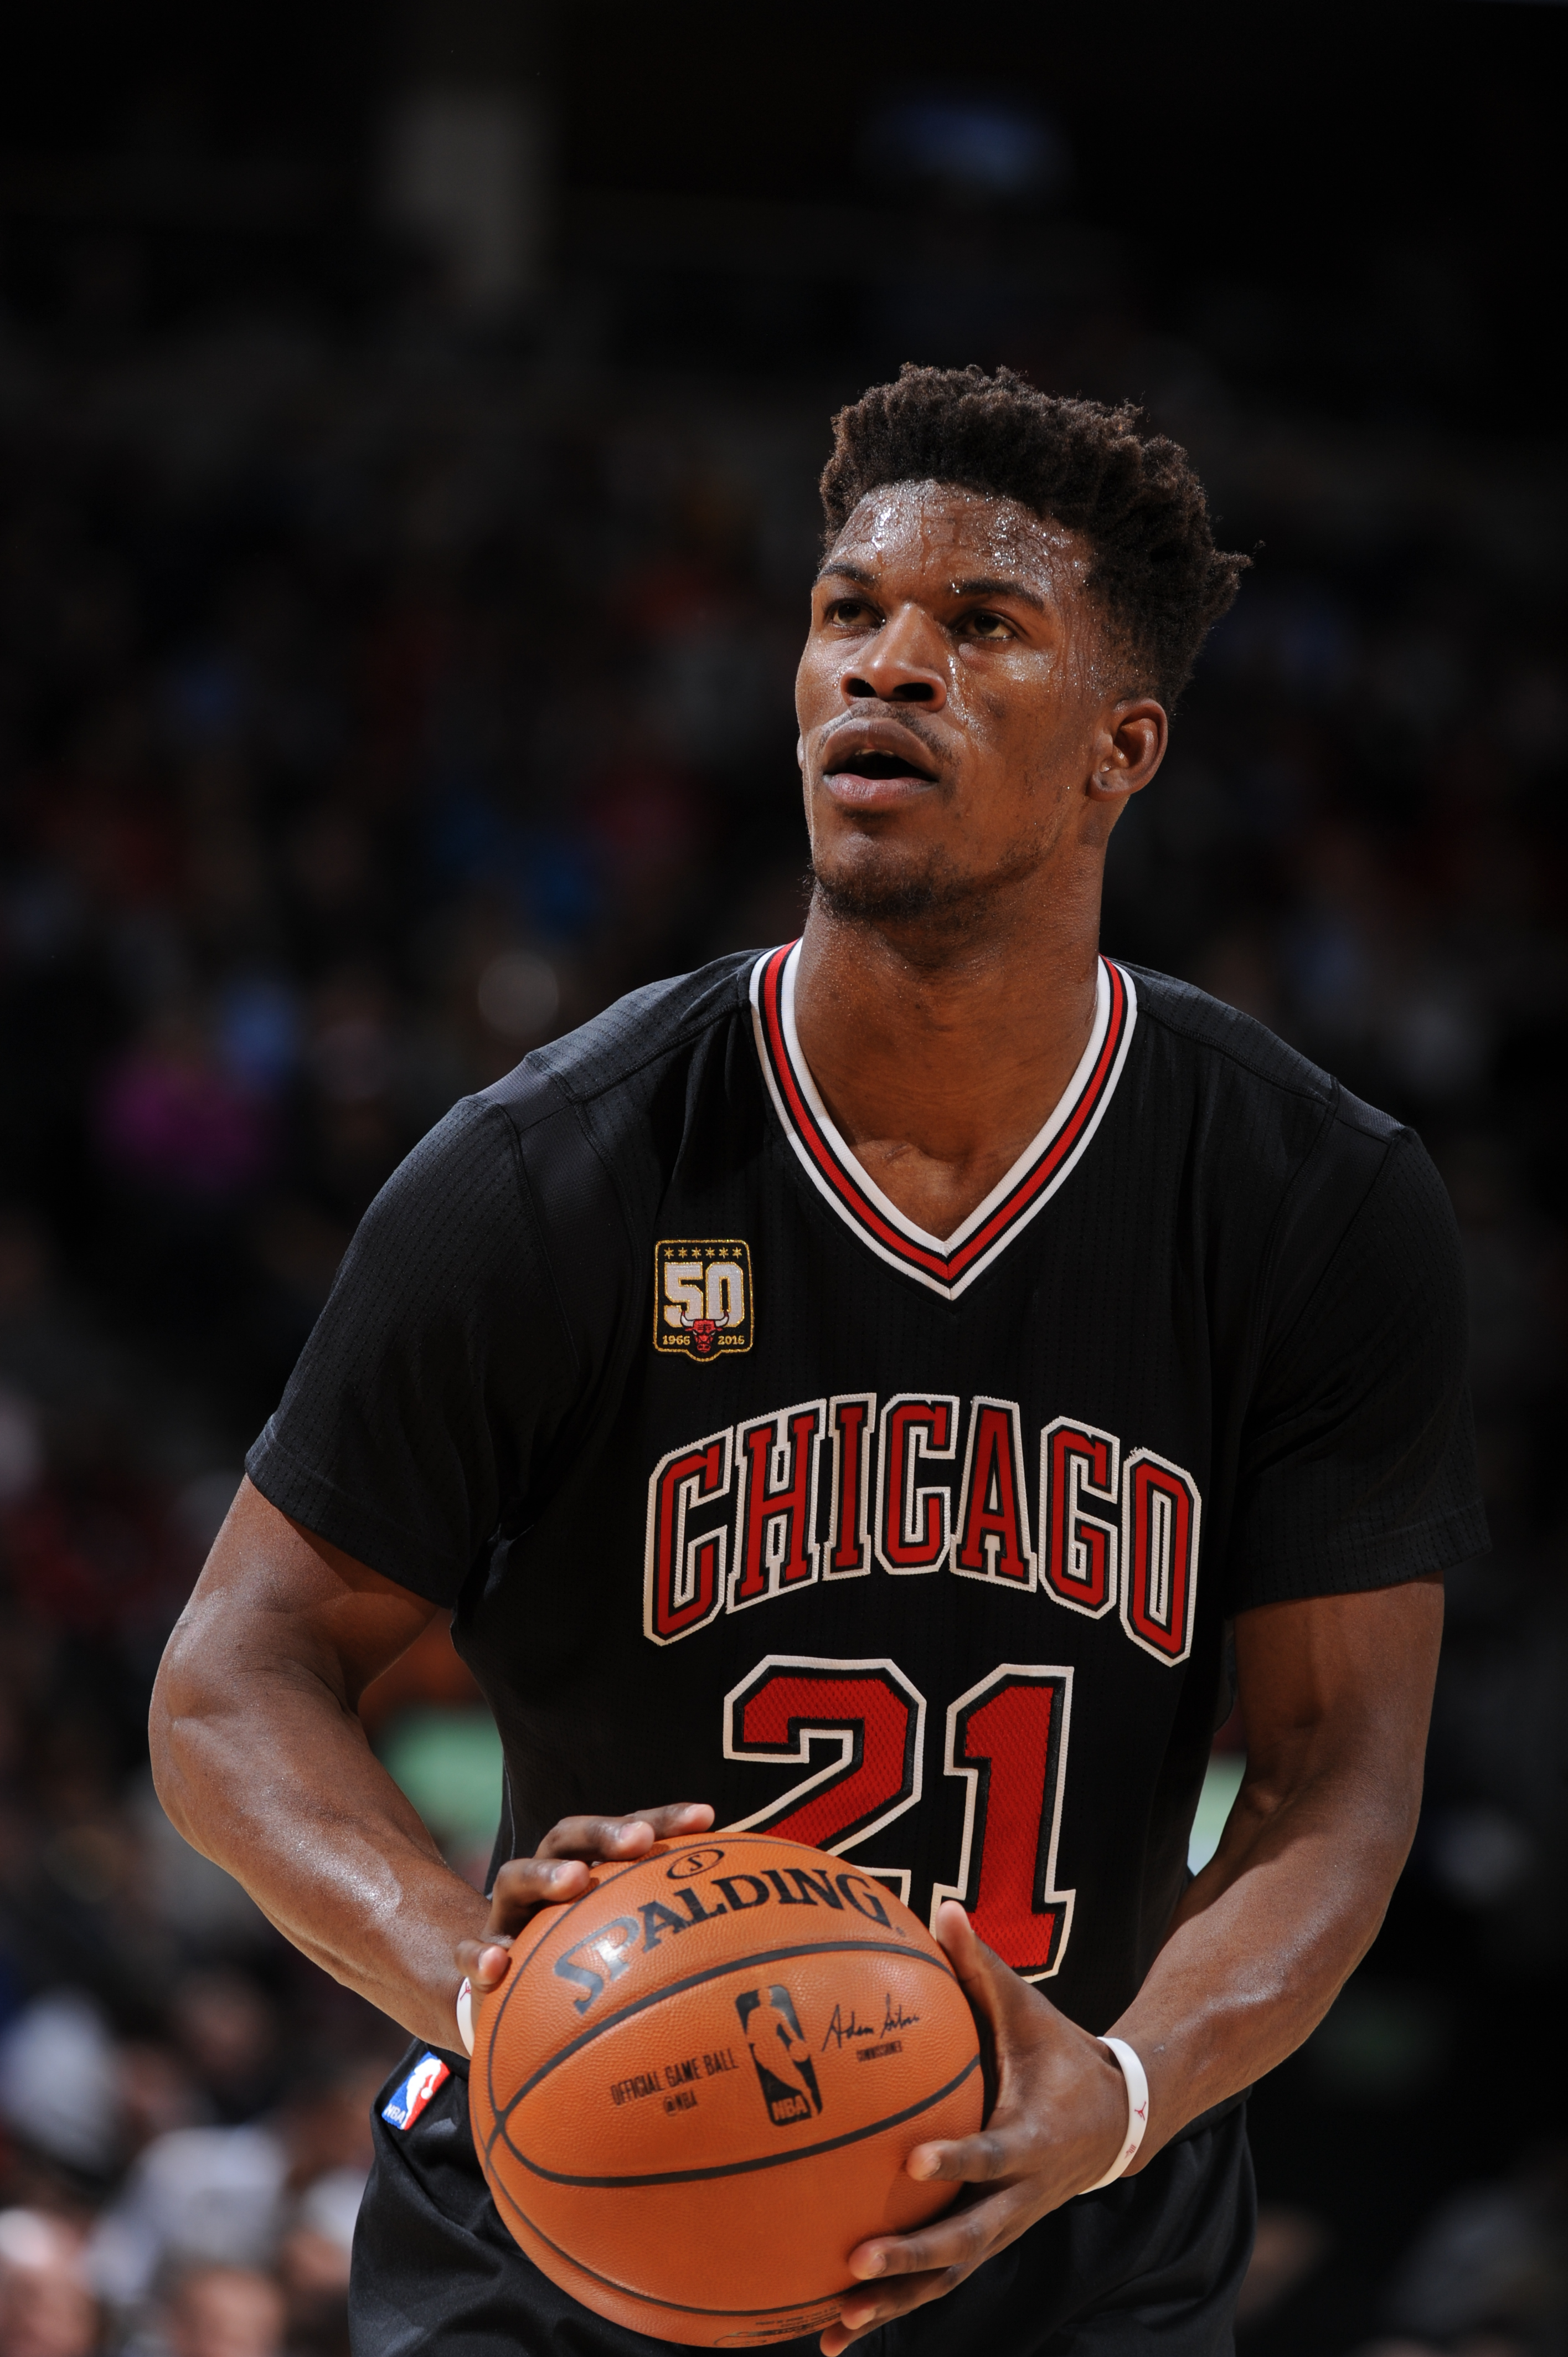 DENVER, CO - FEBRUARY 5:  Jimmy Butler #21 of the Chicago Bulls prepares to shoot a free throw against the Denver Nuggets on February 5, 2016 at the Pepsi Center in Denver, Colorado. (Photo by Garrett Ellwood/NBAE via Getty Images)